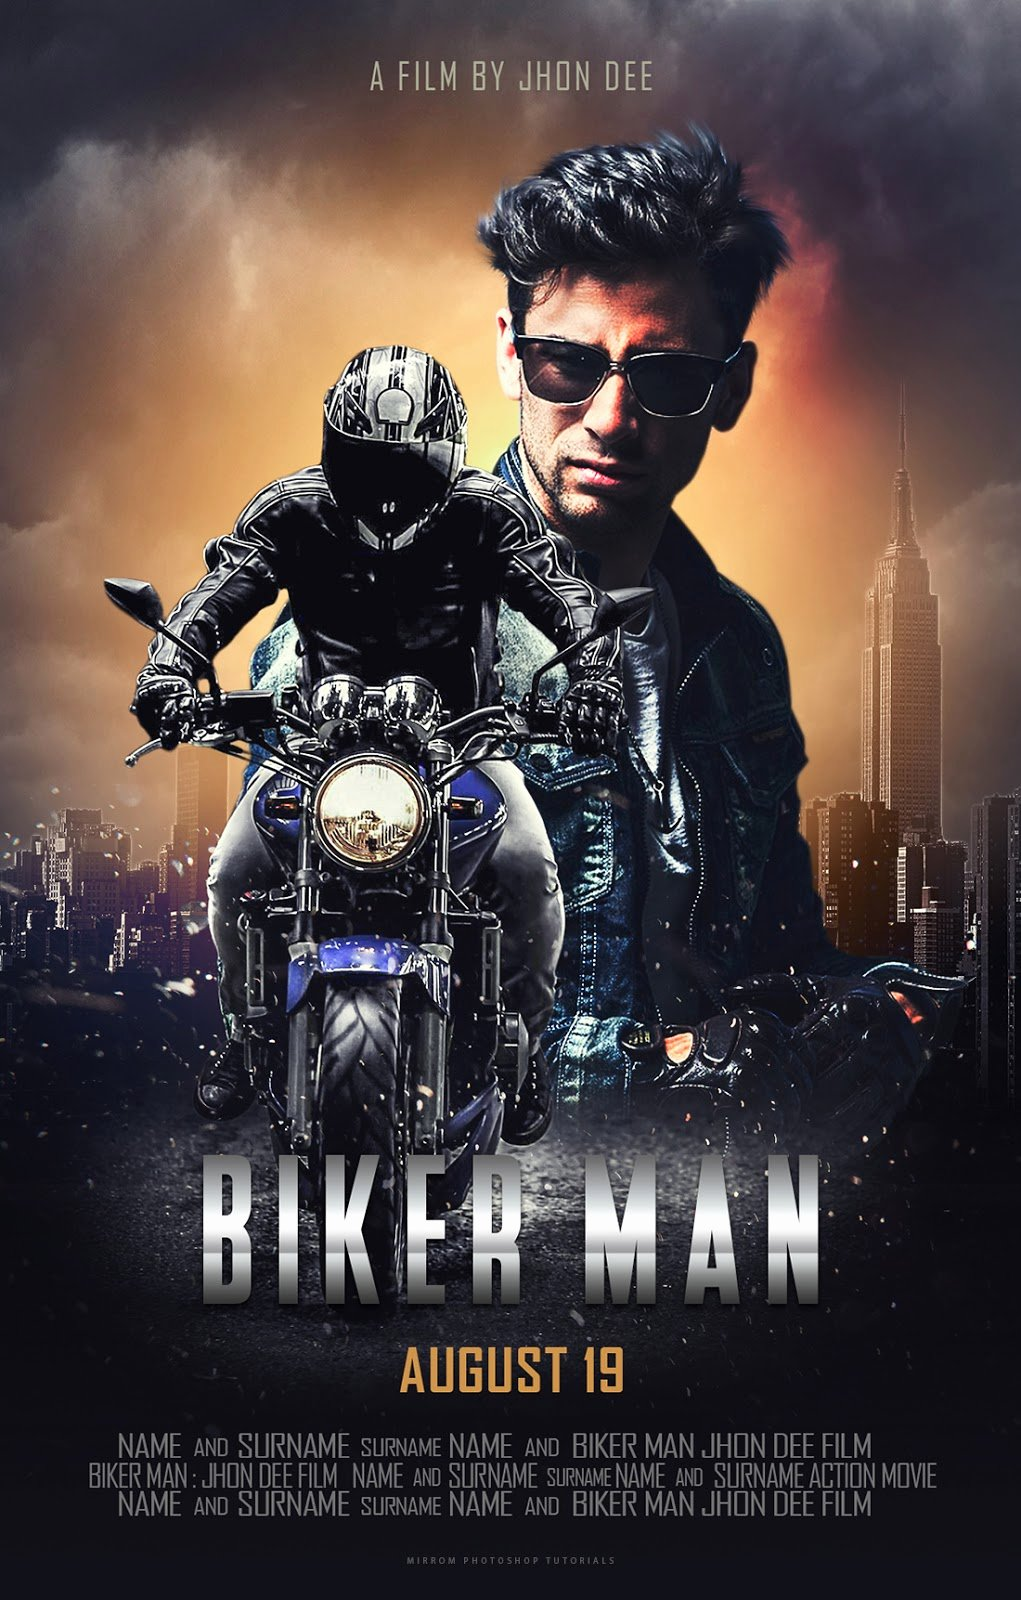 Movie Poster Template Photoshop Elegant Create A Blockbuster Style Movie Poster Design In Shop